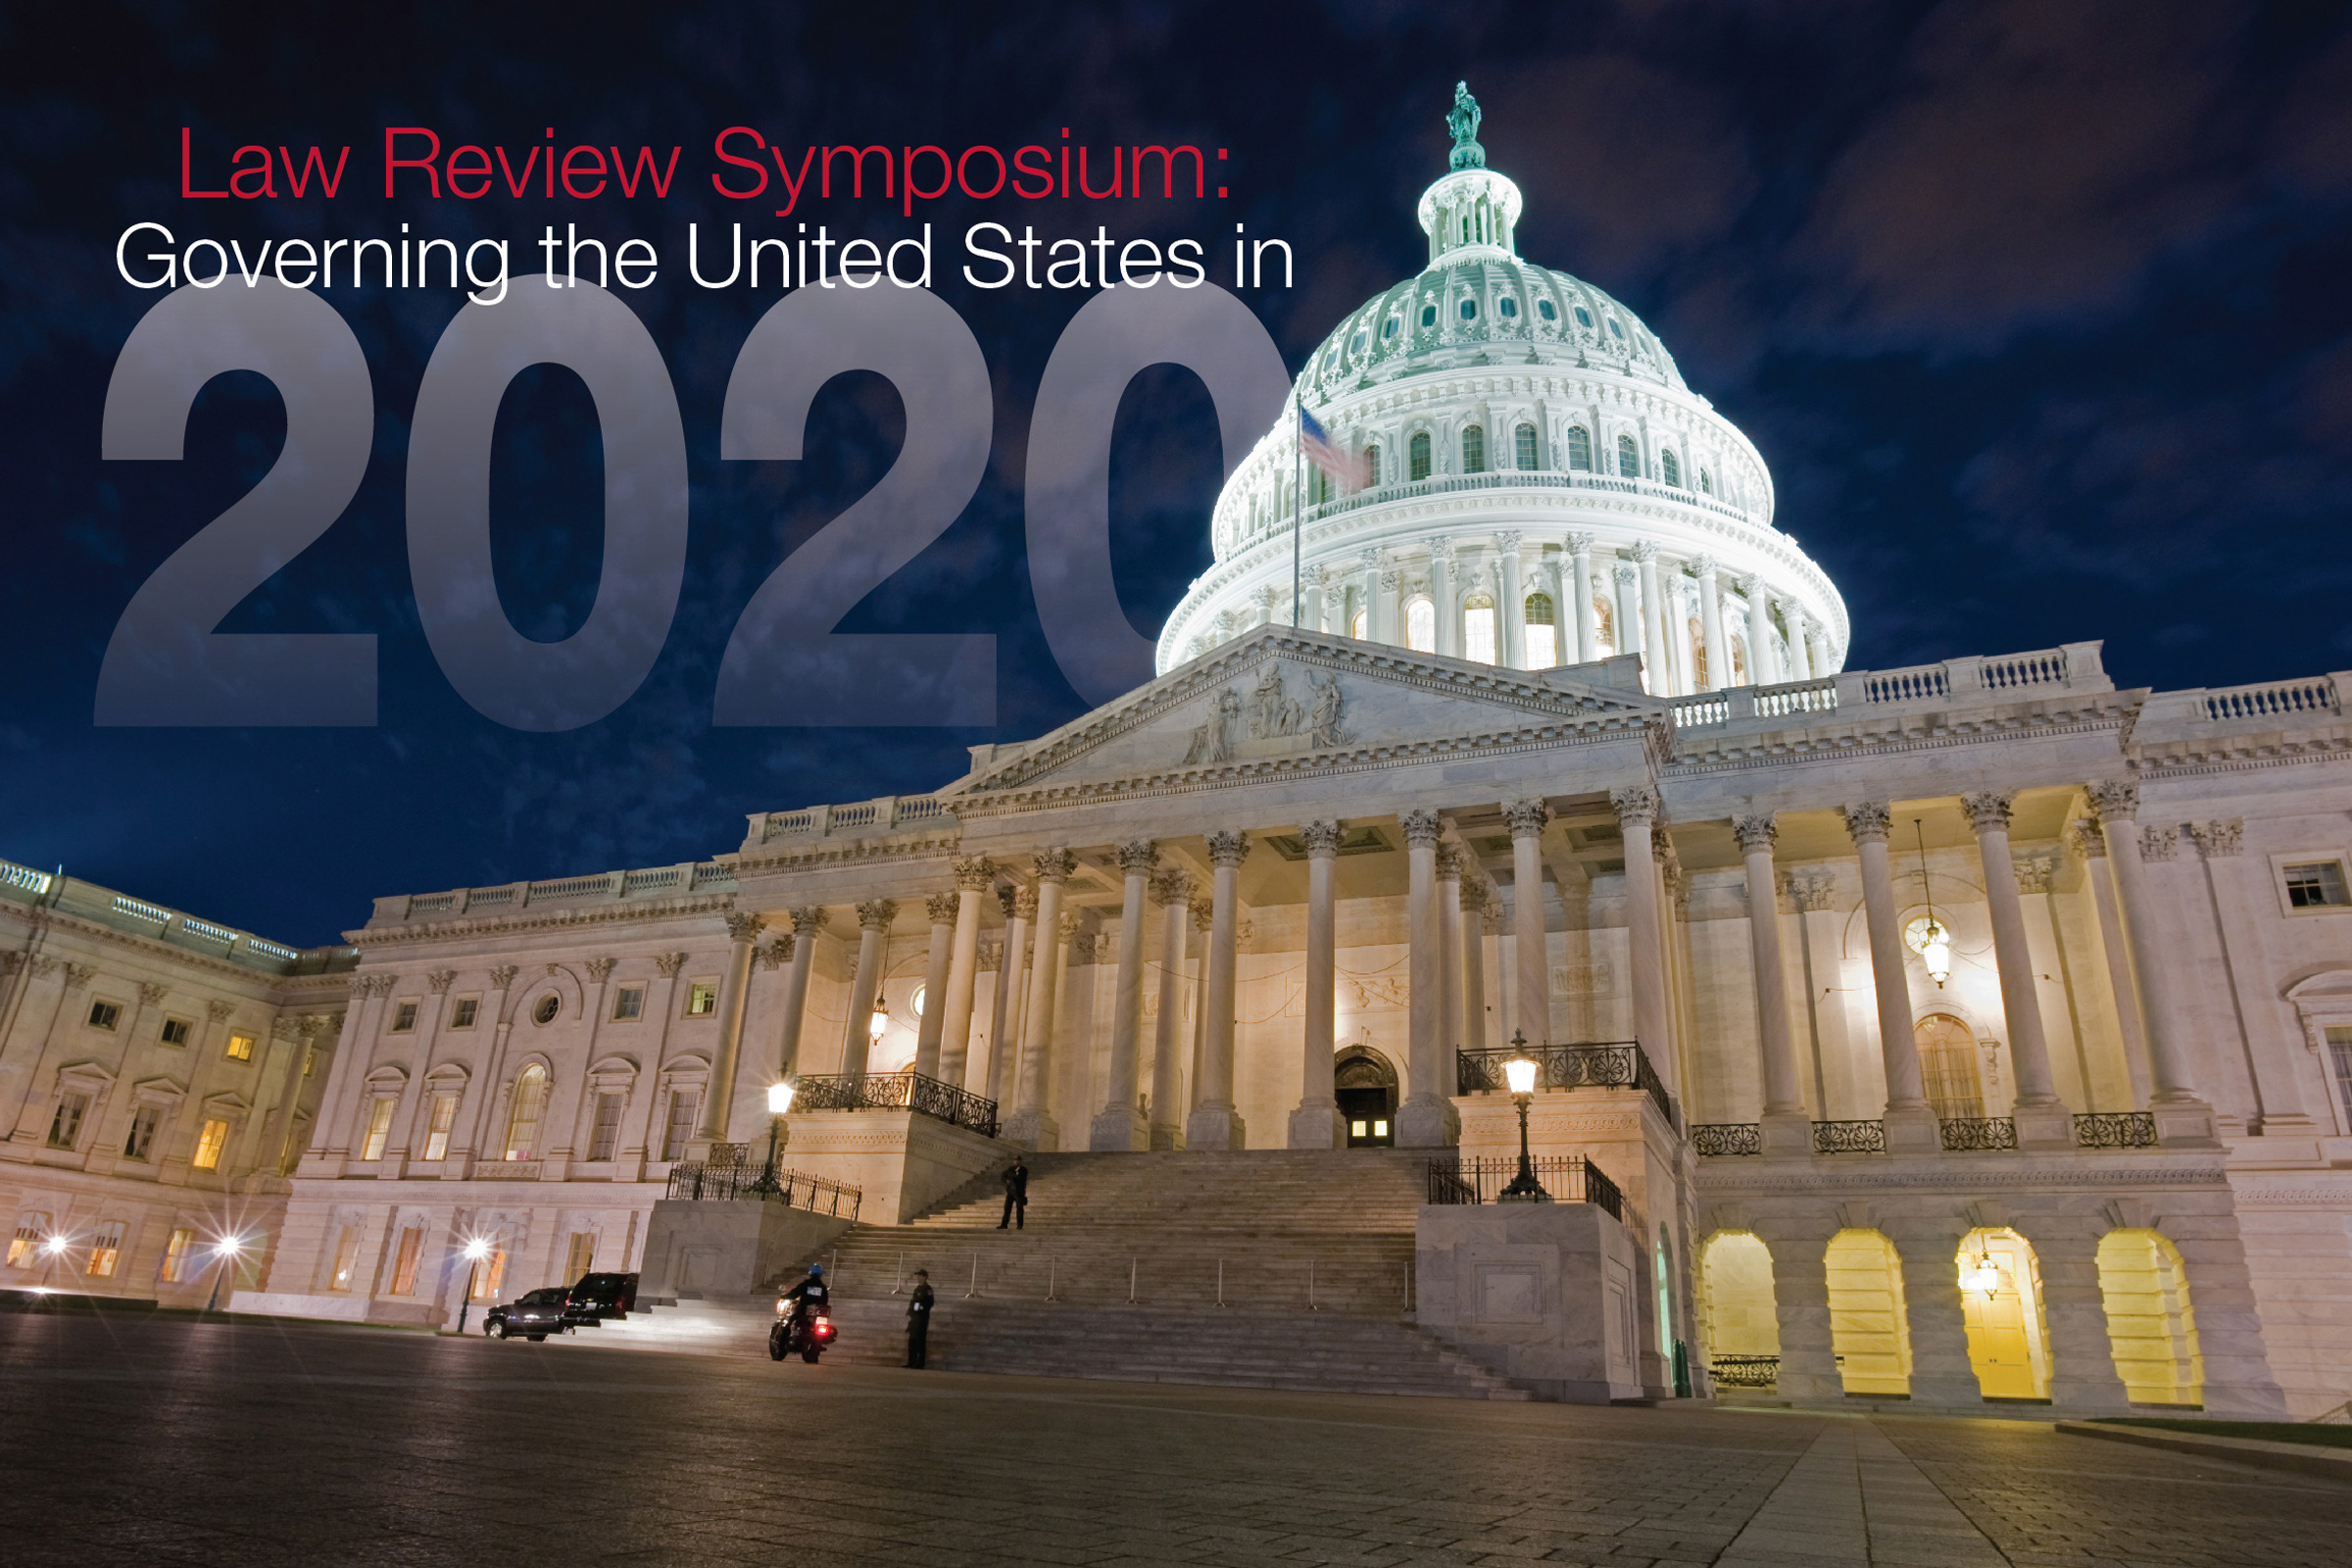 """Former U.S. Senator Jeff Bingaman will give the keynote address at the U's Law Review Symposium, Friday, Nov. 8, 8 a.m. – 4:30 p.m. The symposium, titled """"Governing the United States in 2020,"""" focuses on current challenges and practical solutions to problems facing U.S. government."""